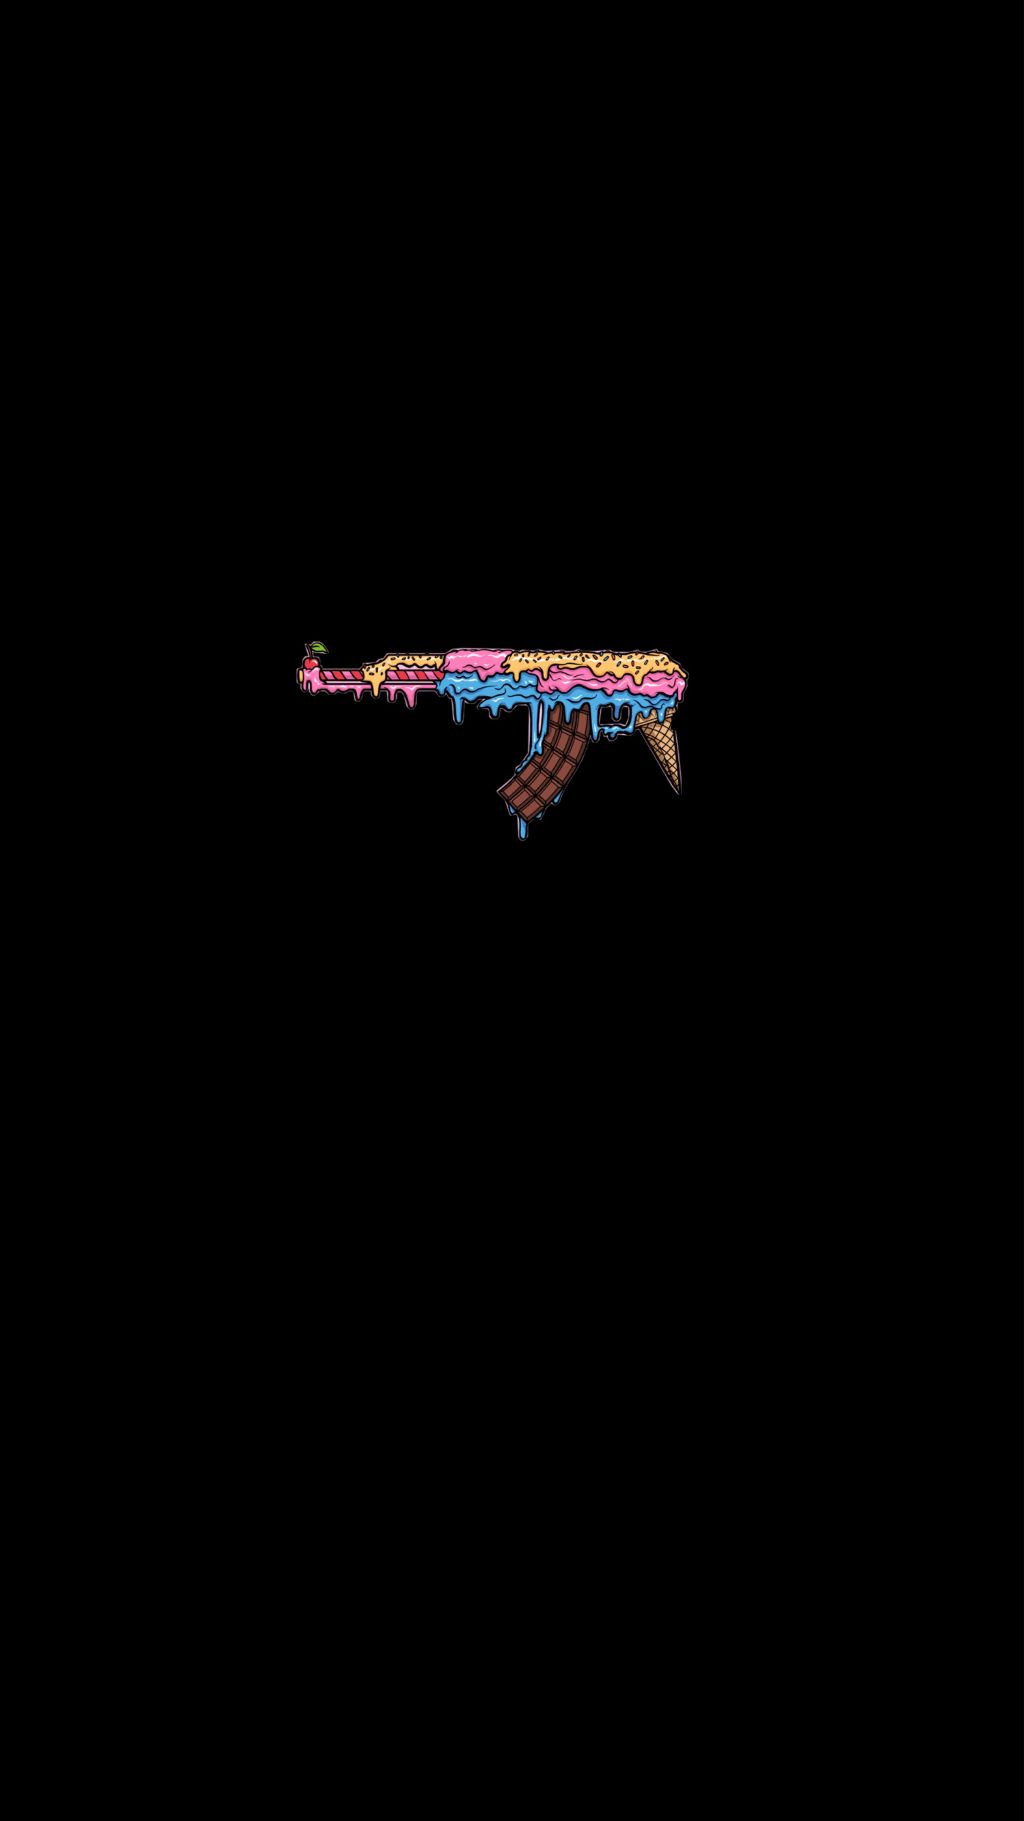 Icecream Ak47 Wallpaper Image By Jofly Sanchez